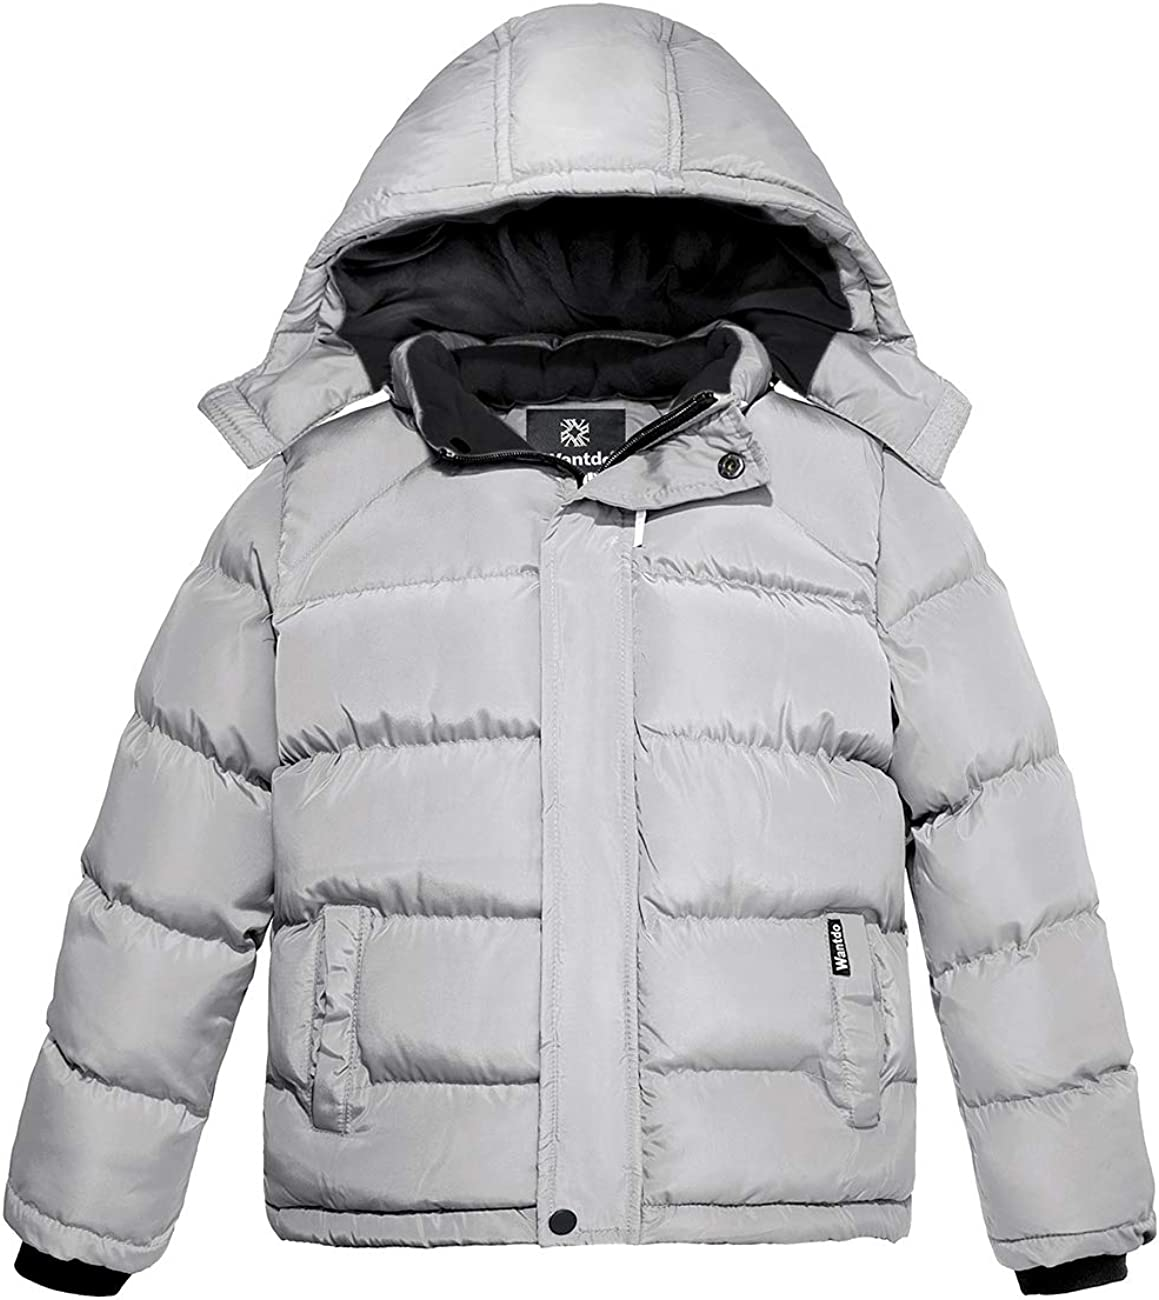 Wantdo Boy's Winter Coat Thicken Padded Warm Puffer Jacket with Detachable Hood